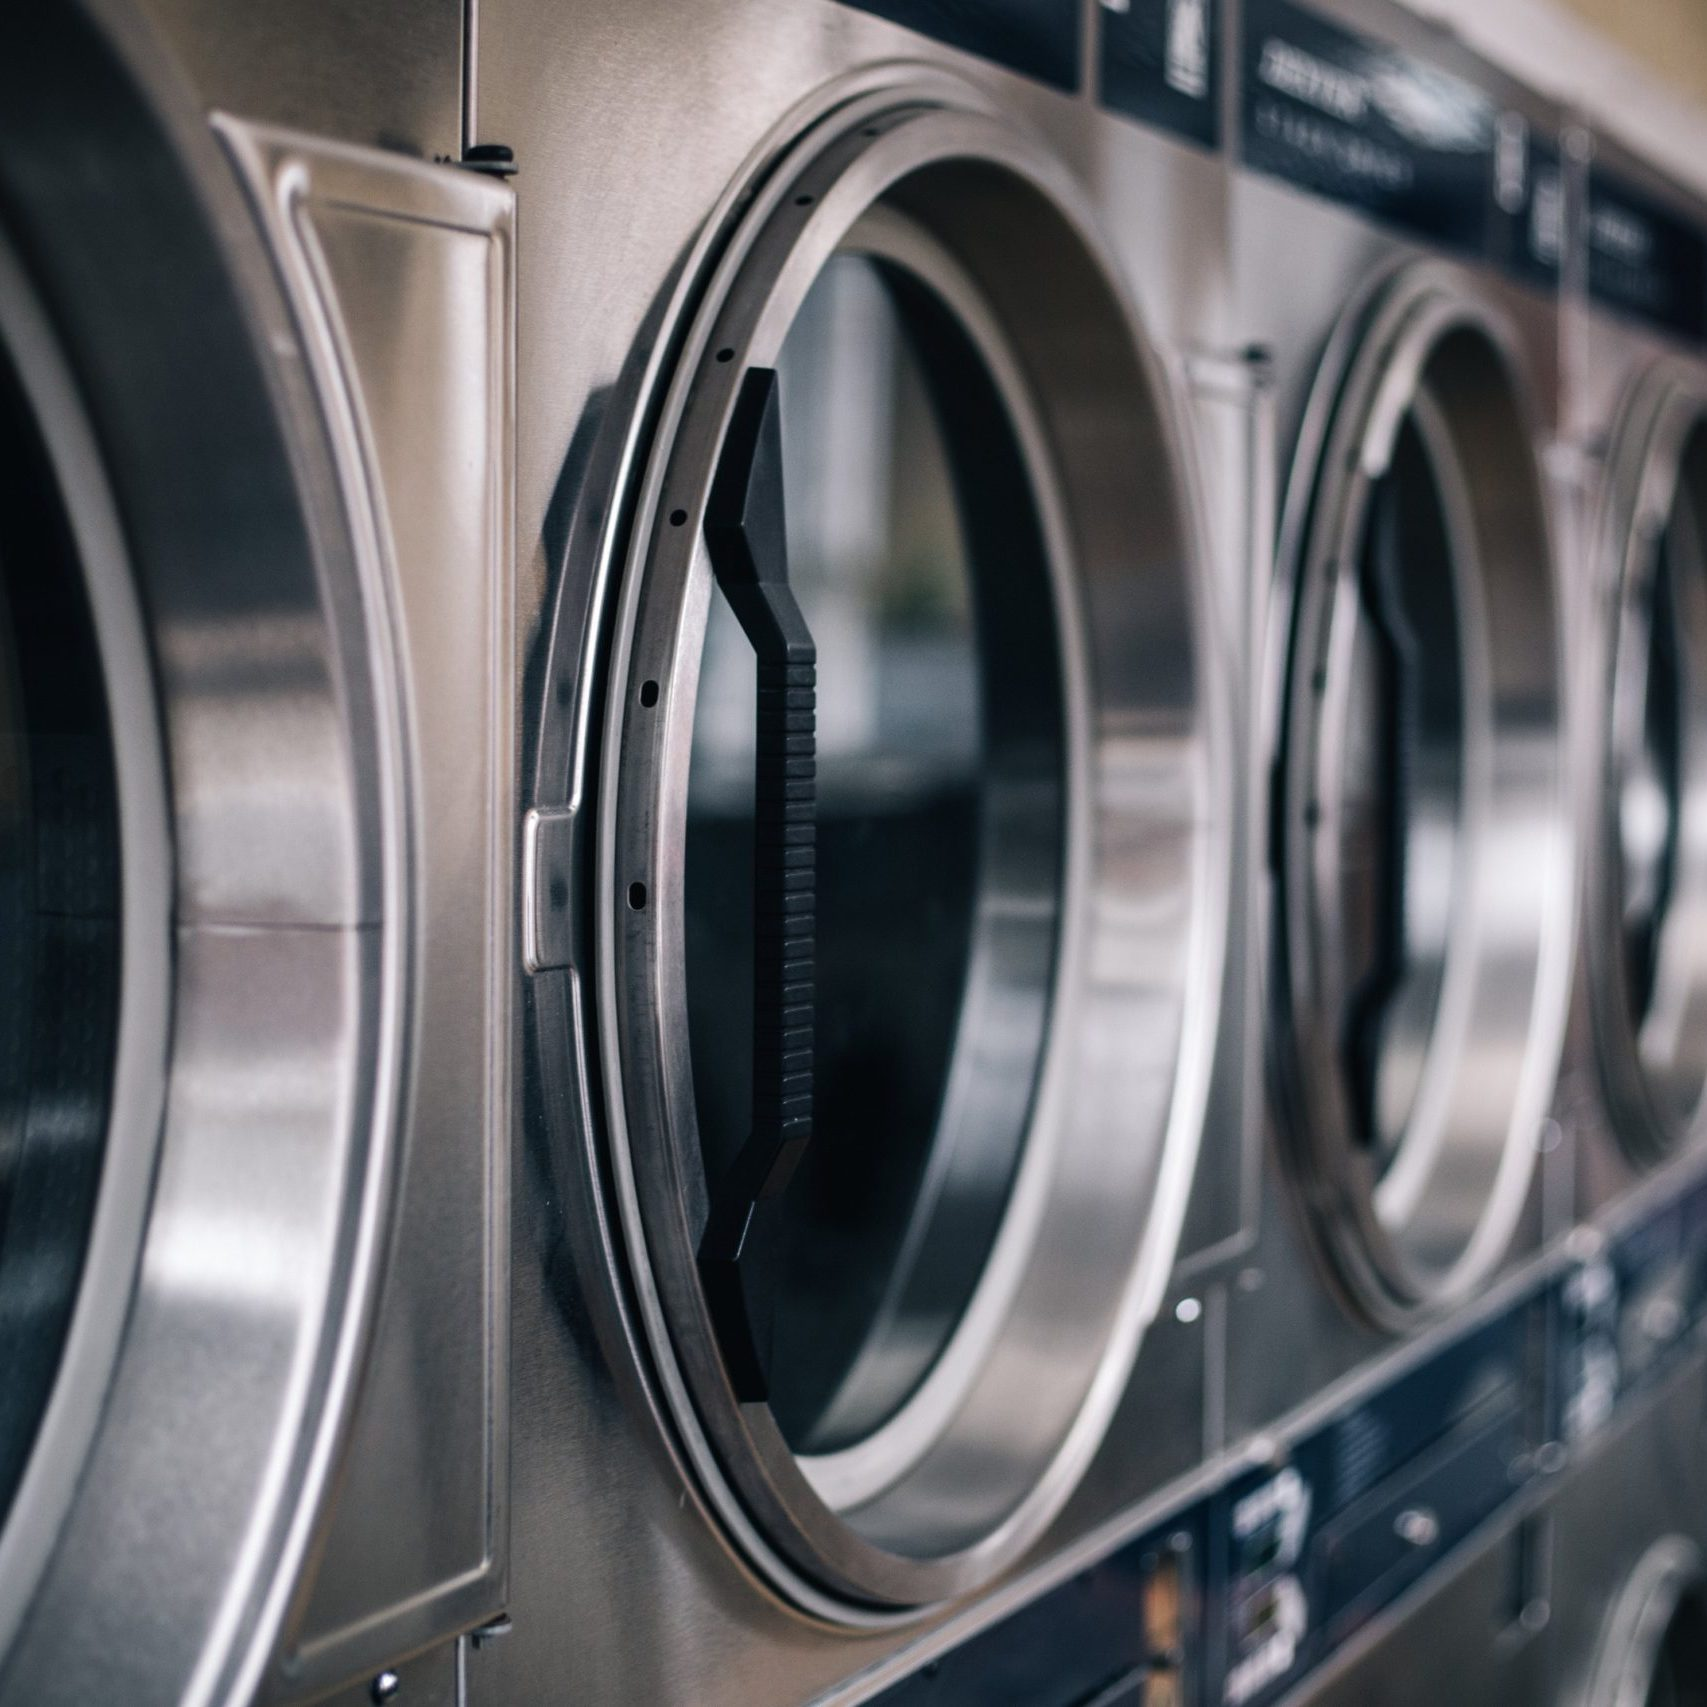 washing-machines-in-a-public-laundromat